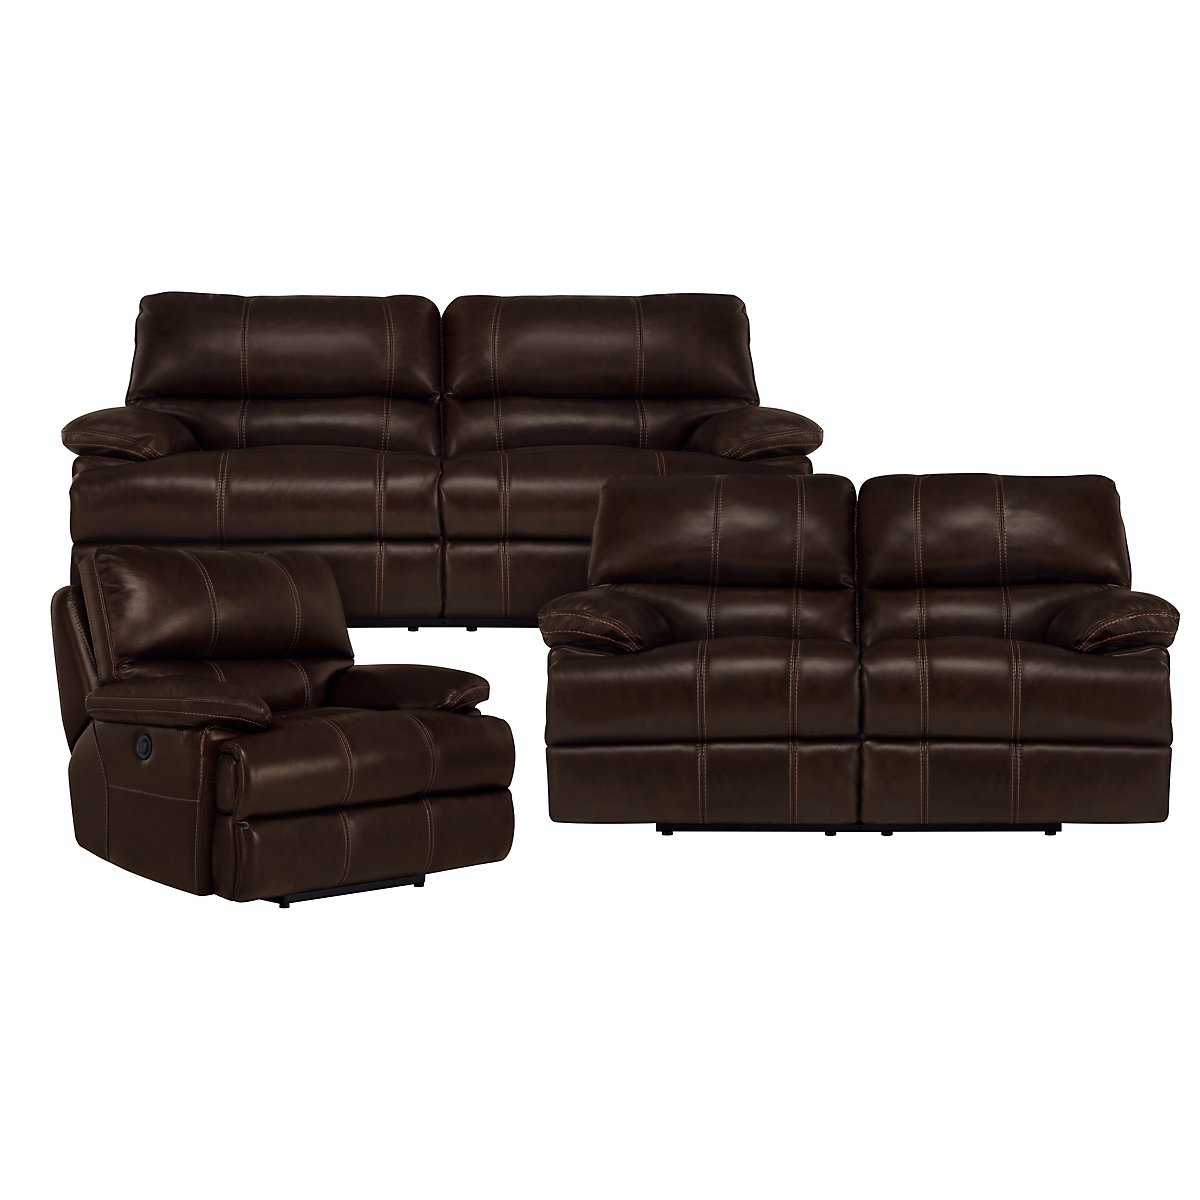 Alton2 Dk Brown Leather & Vinyl Power Reclining Living Room